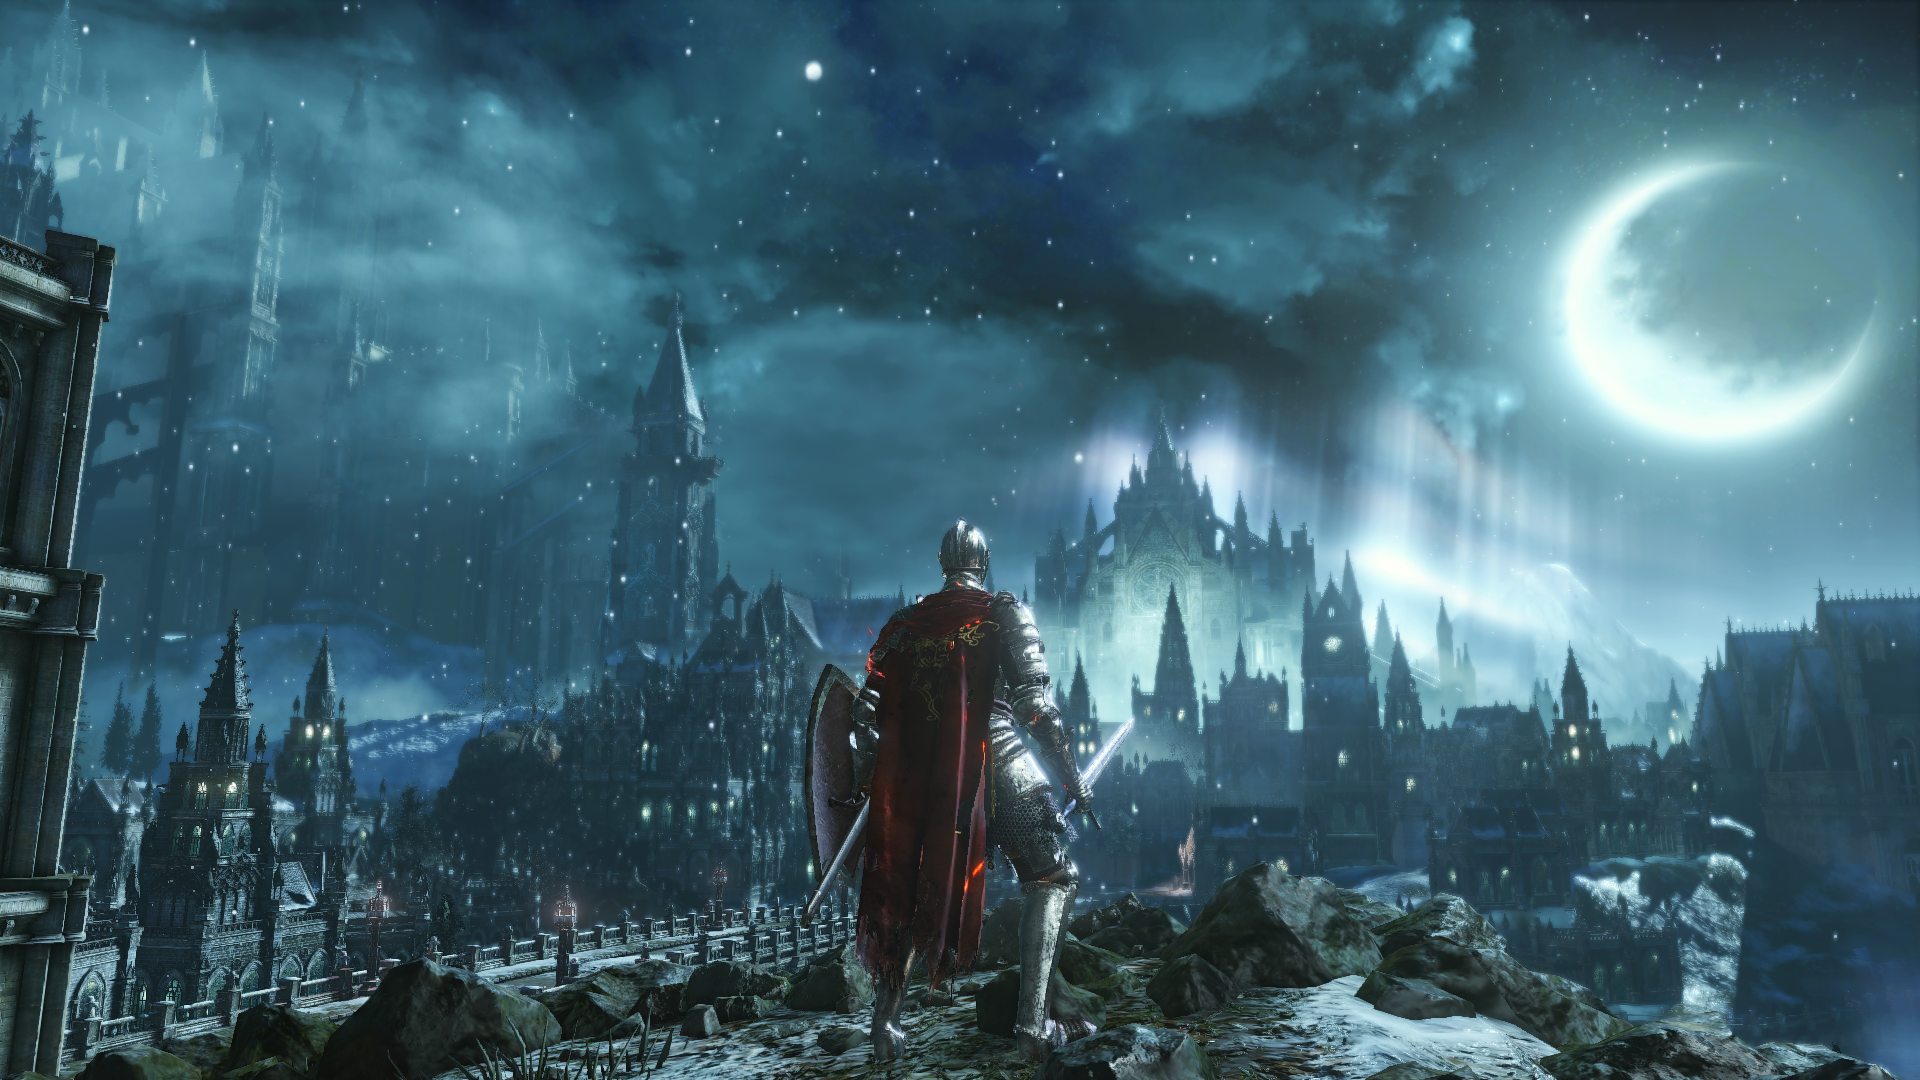 Phoenix Undead Reshade Irithyll Boreal Valley At Dark Souls 3